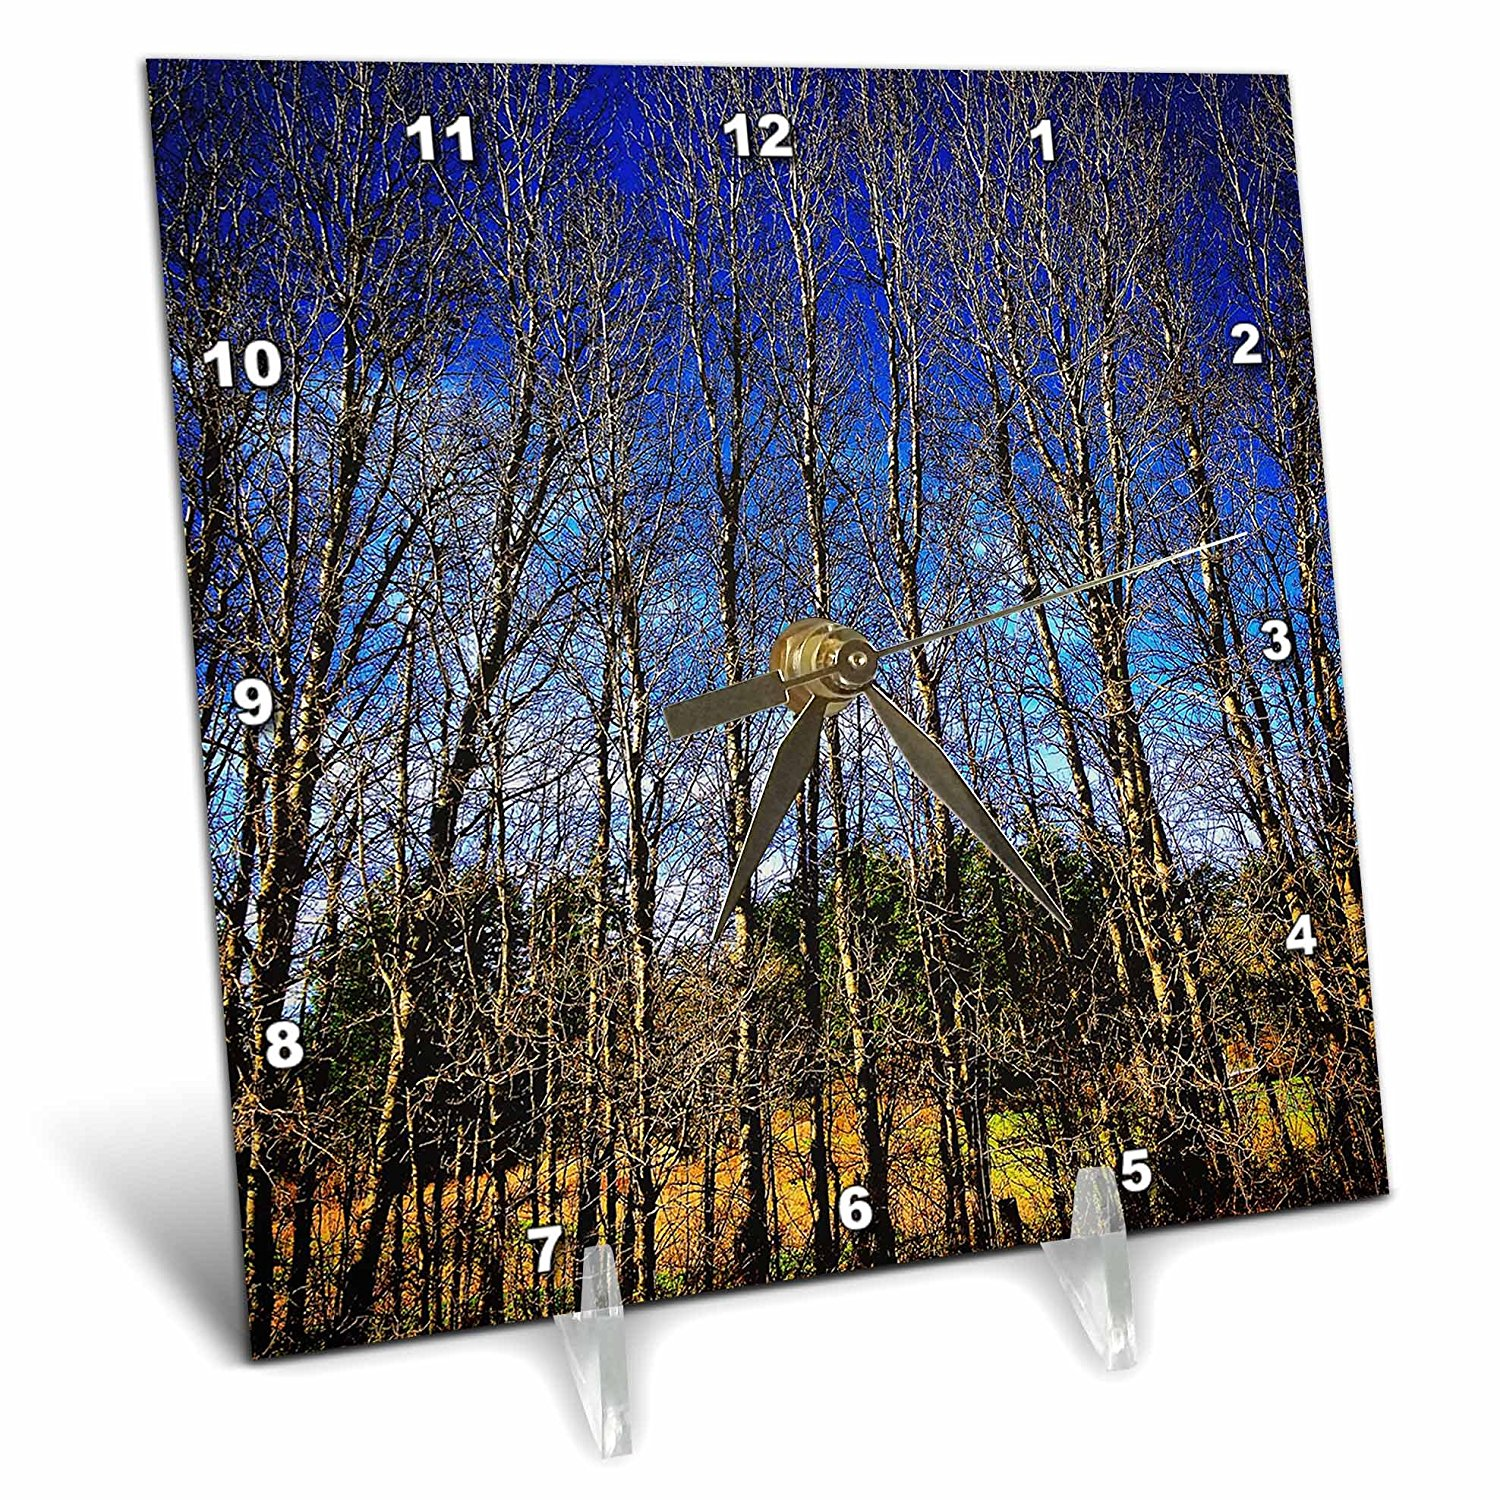 DYLAN SEIBOLD - PHOTOGRAPHY - THIN TREE STAND - 6x6 Desk Clock (dc_245711_1)